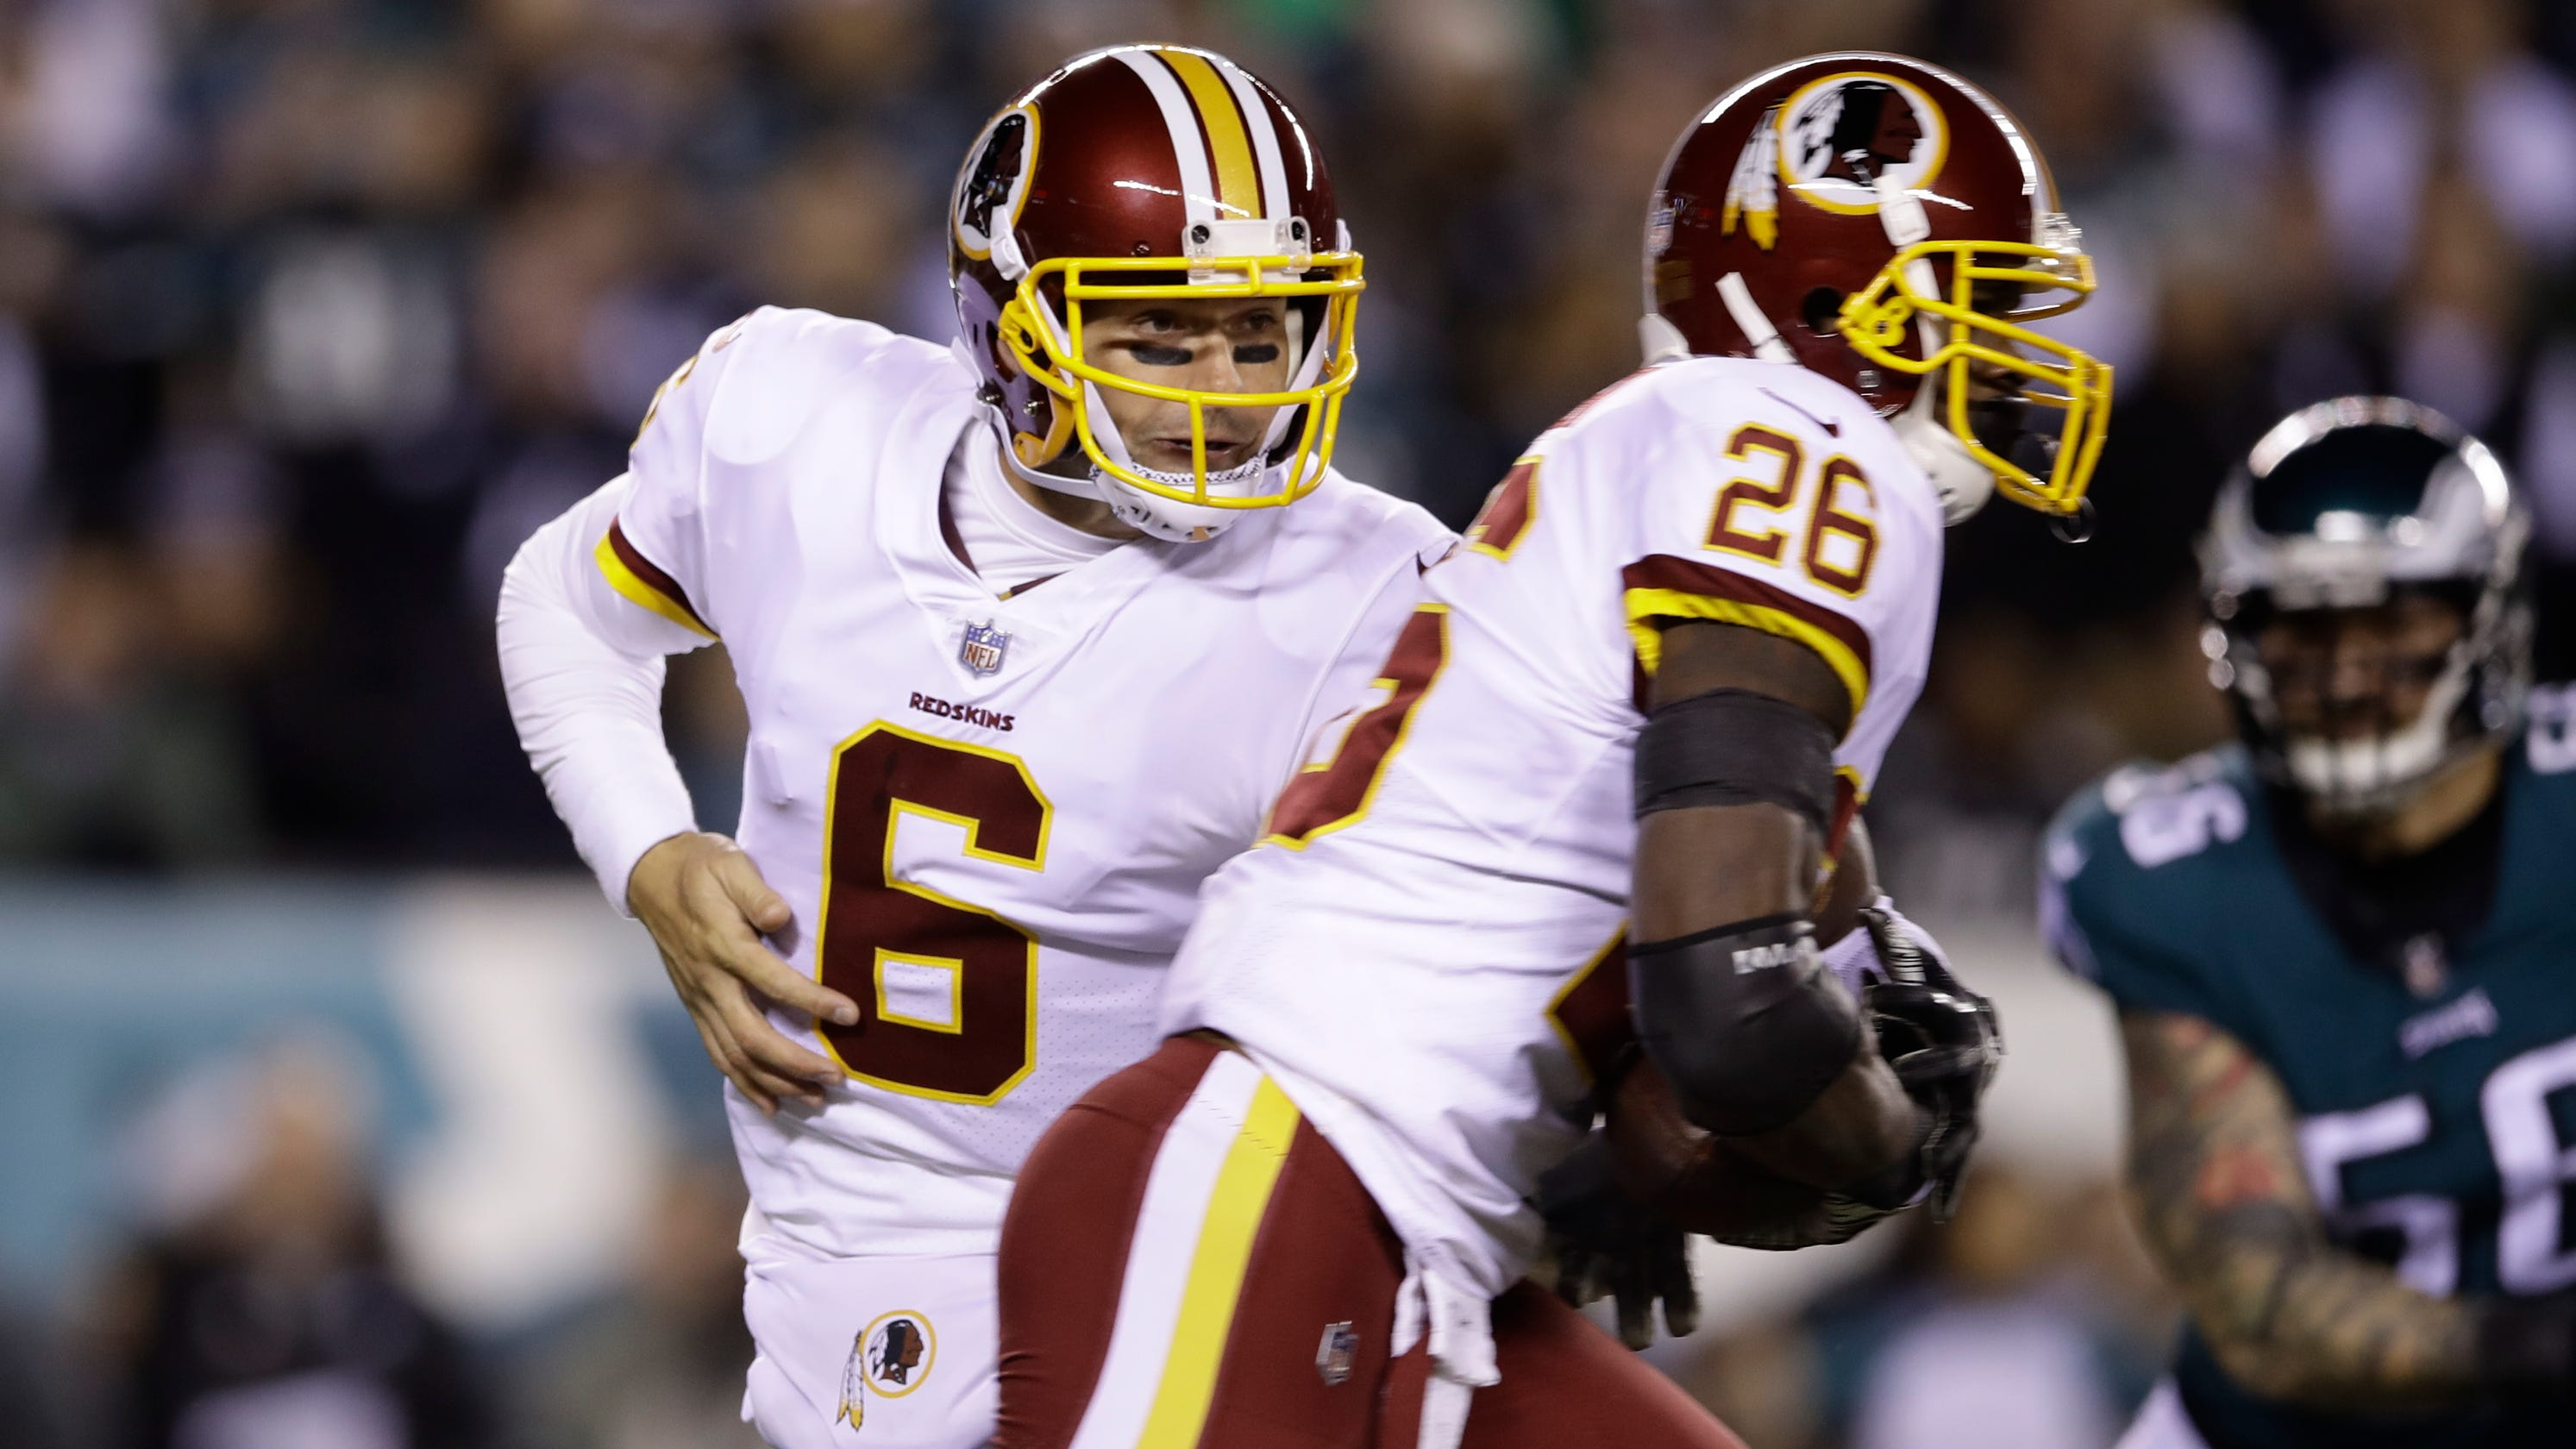 2a58b2c13 Mark Sanchez replaced injured Colt McCoy in Redskins  game vs. Eagles on  Monday night